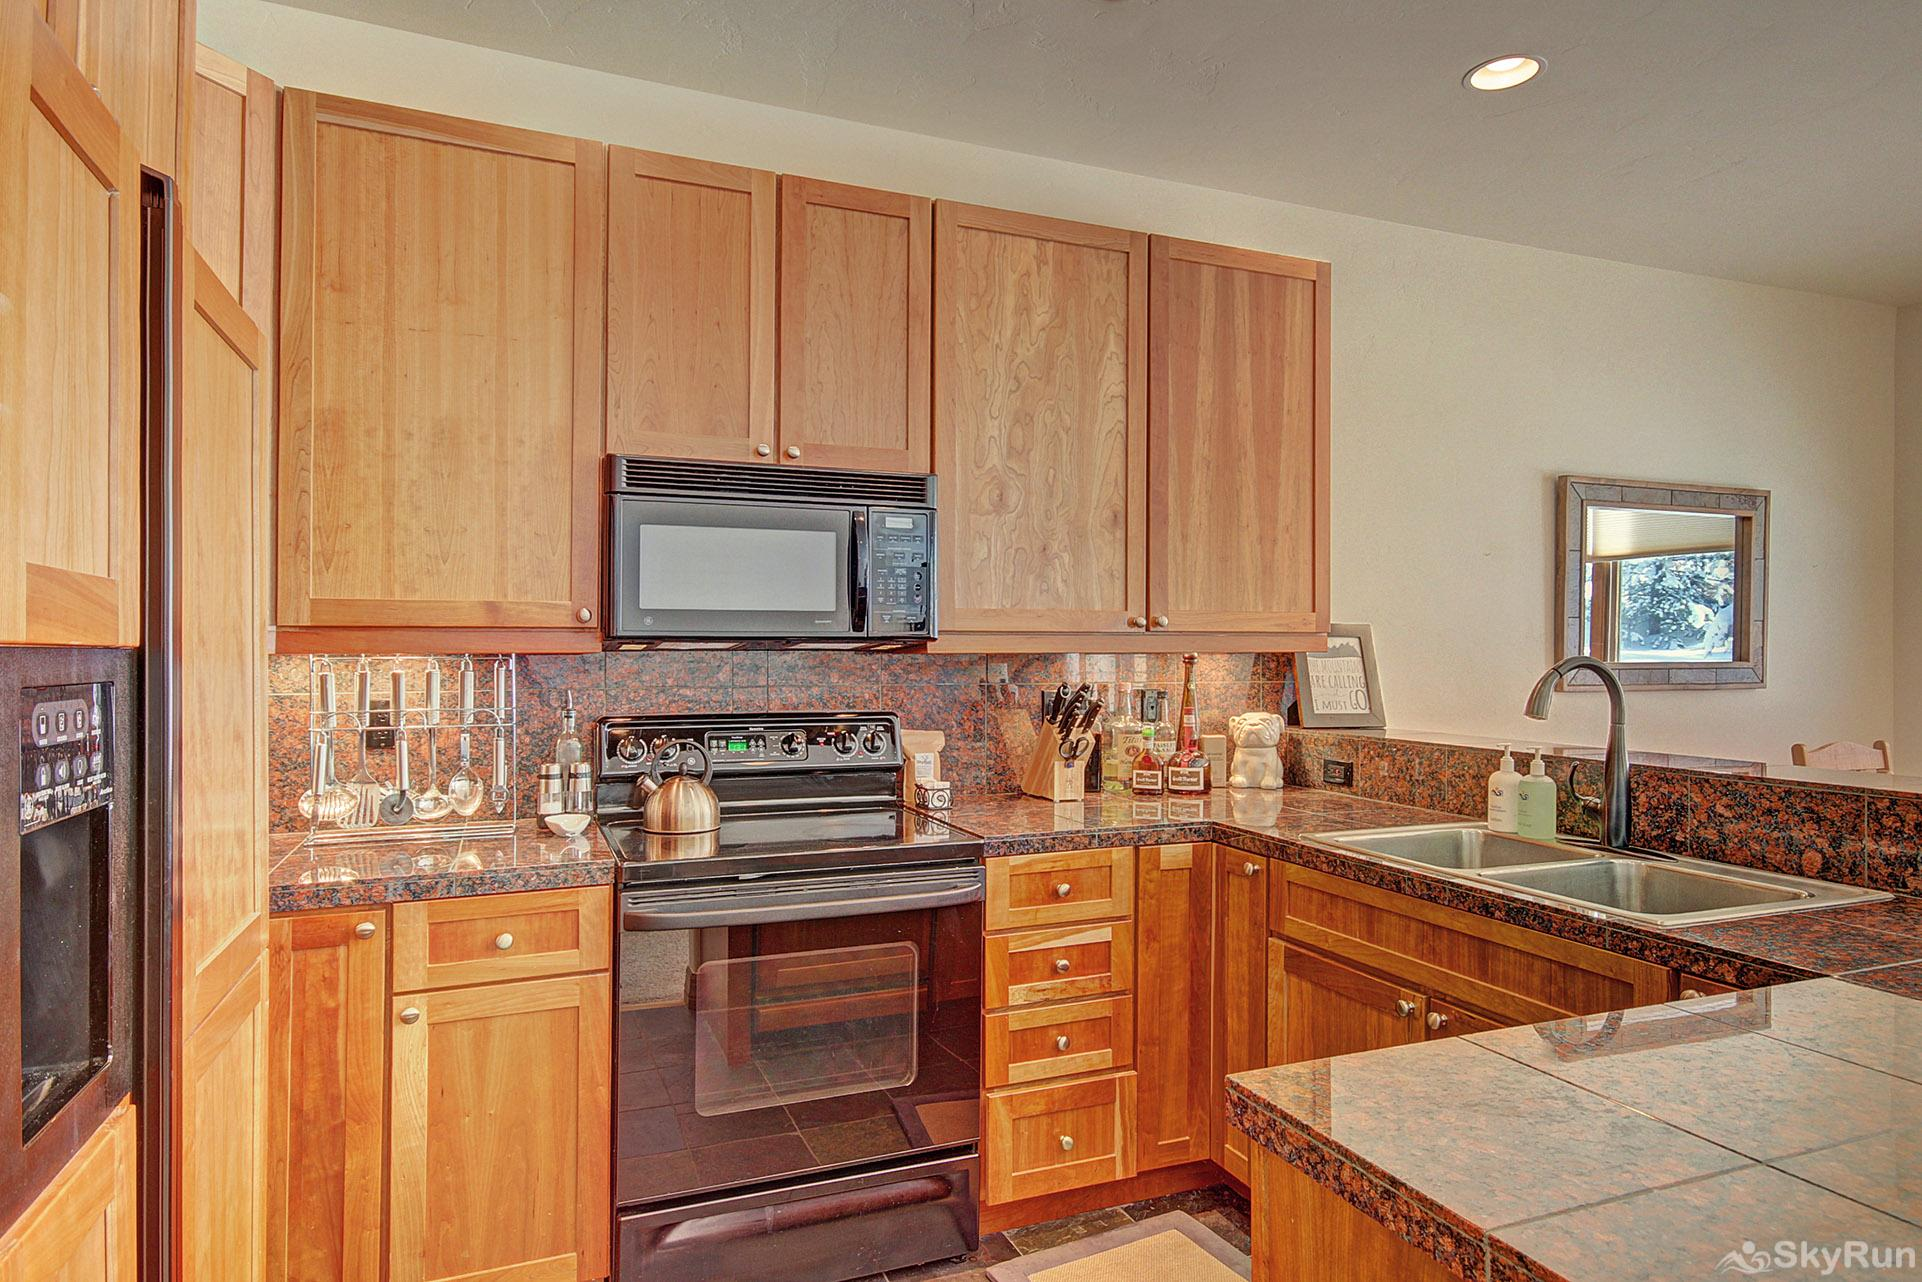 Highland Greens Pine Fully equipped kitchen with modern appliances